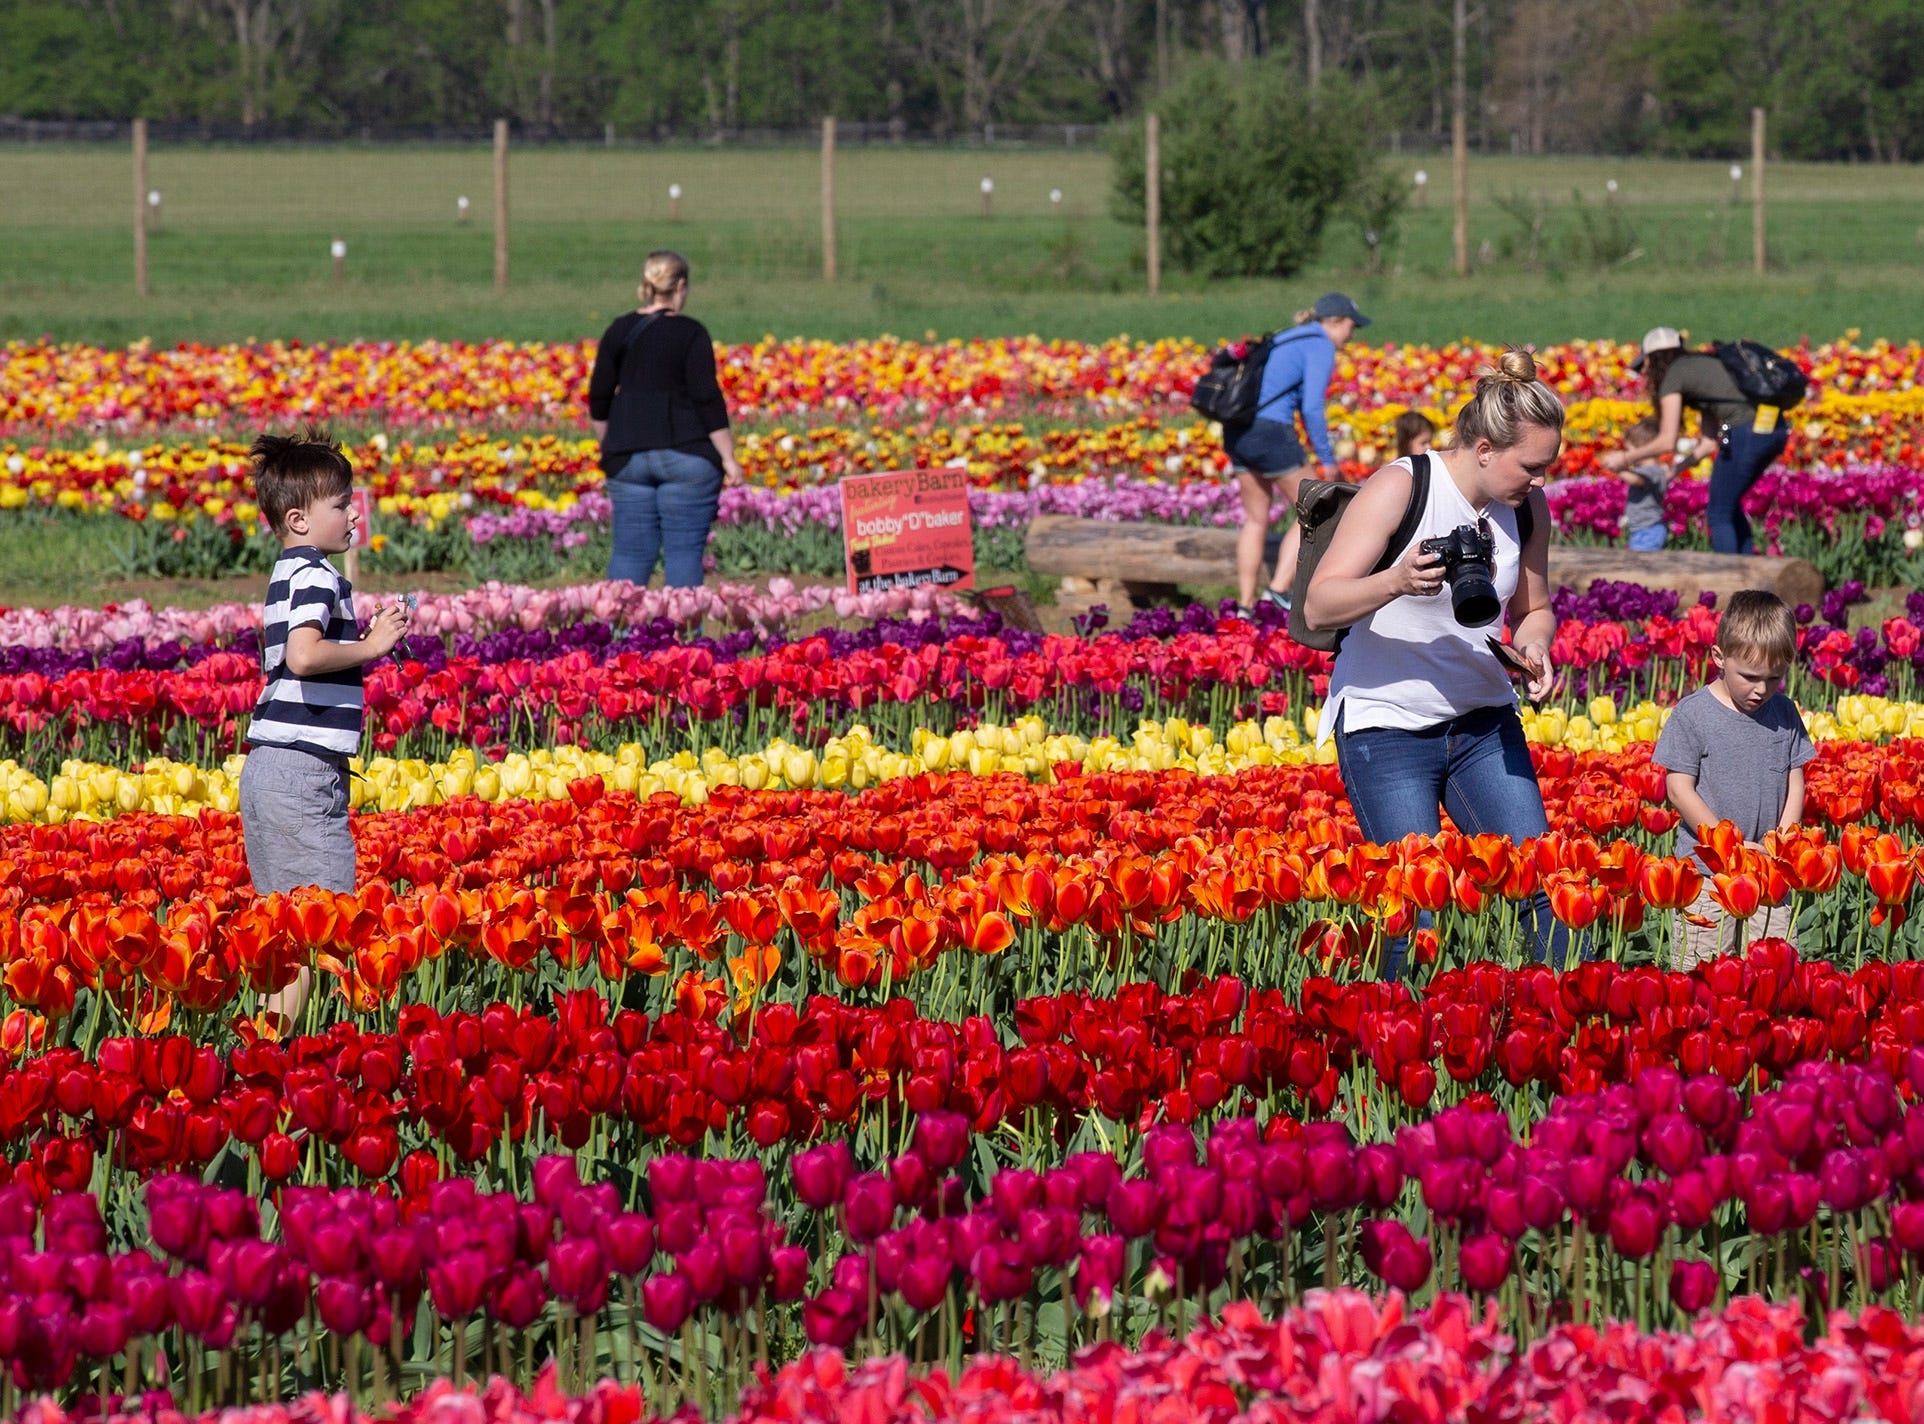 Annual Tulip Festival at Holland Ridge Farms in Cream Ridge Section of Upper Freehold Township. People came from all around to look at the flowers, take pictures of the flowers, and take pictures of themselves with the flowers.